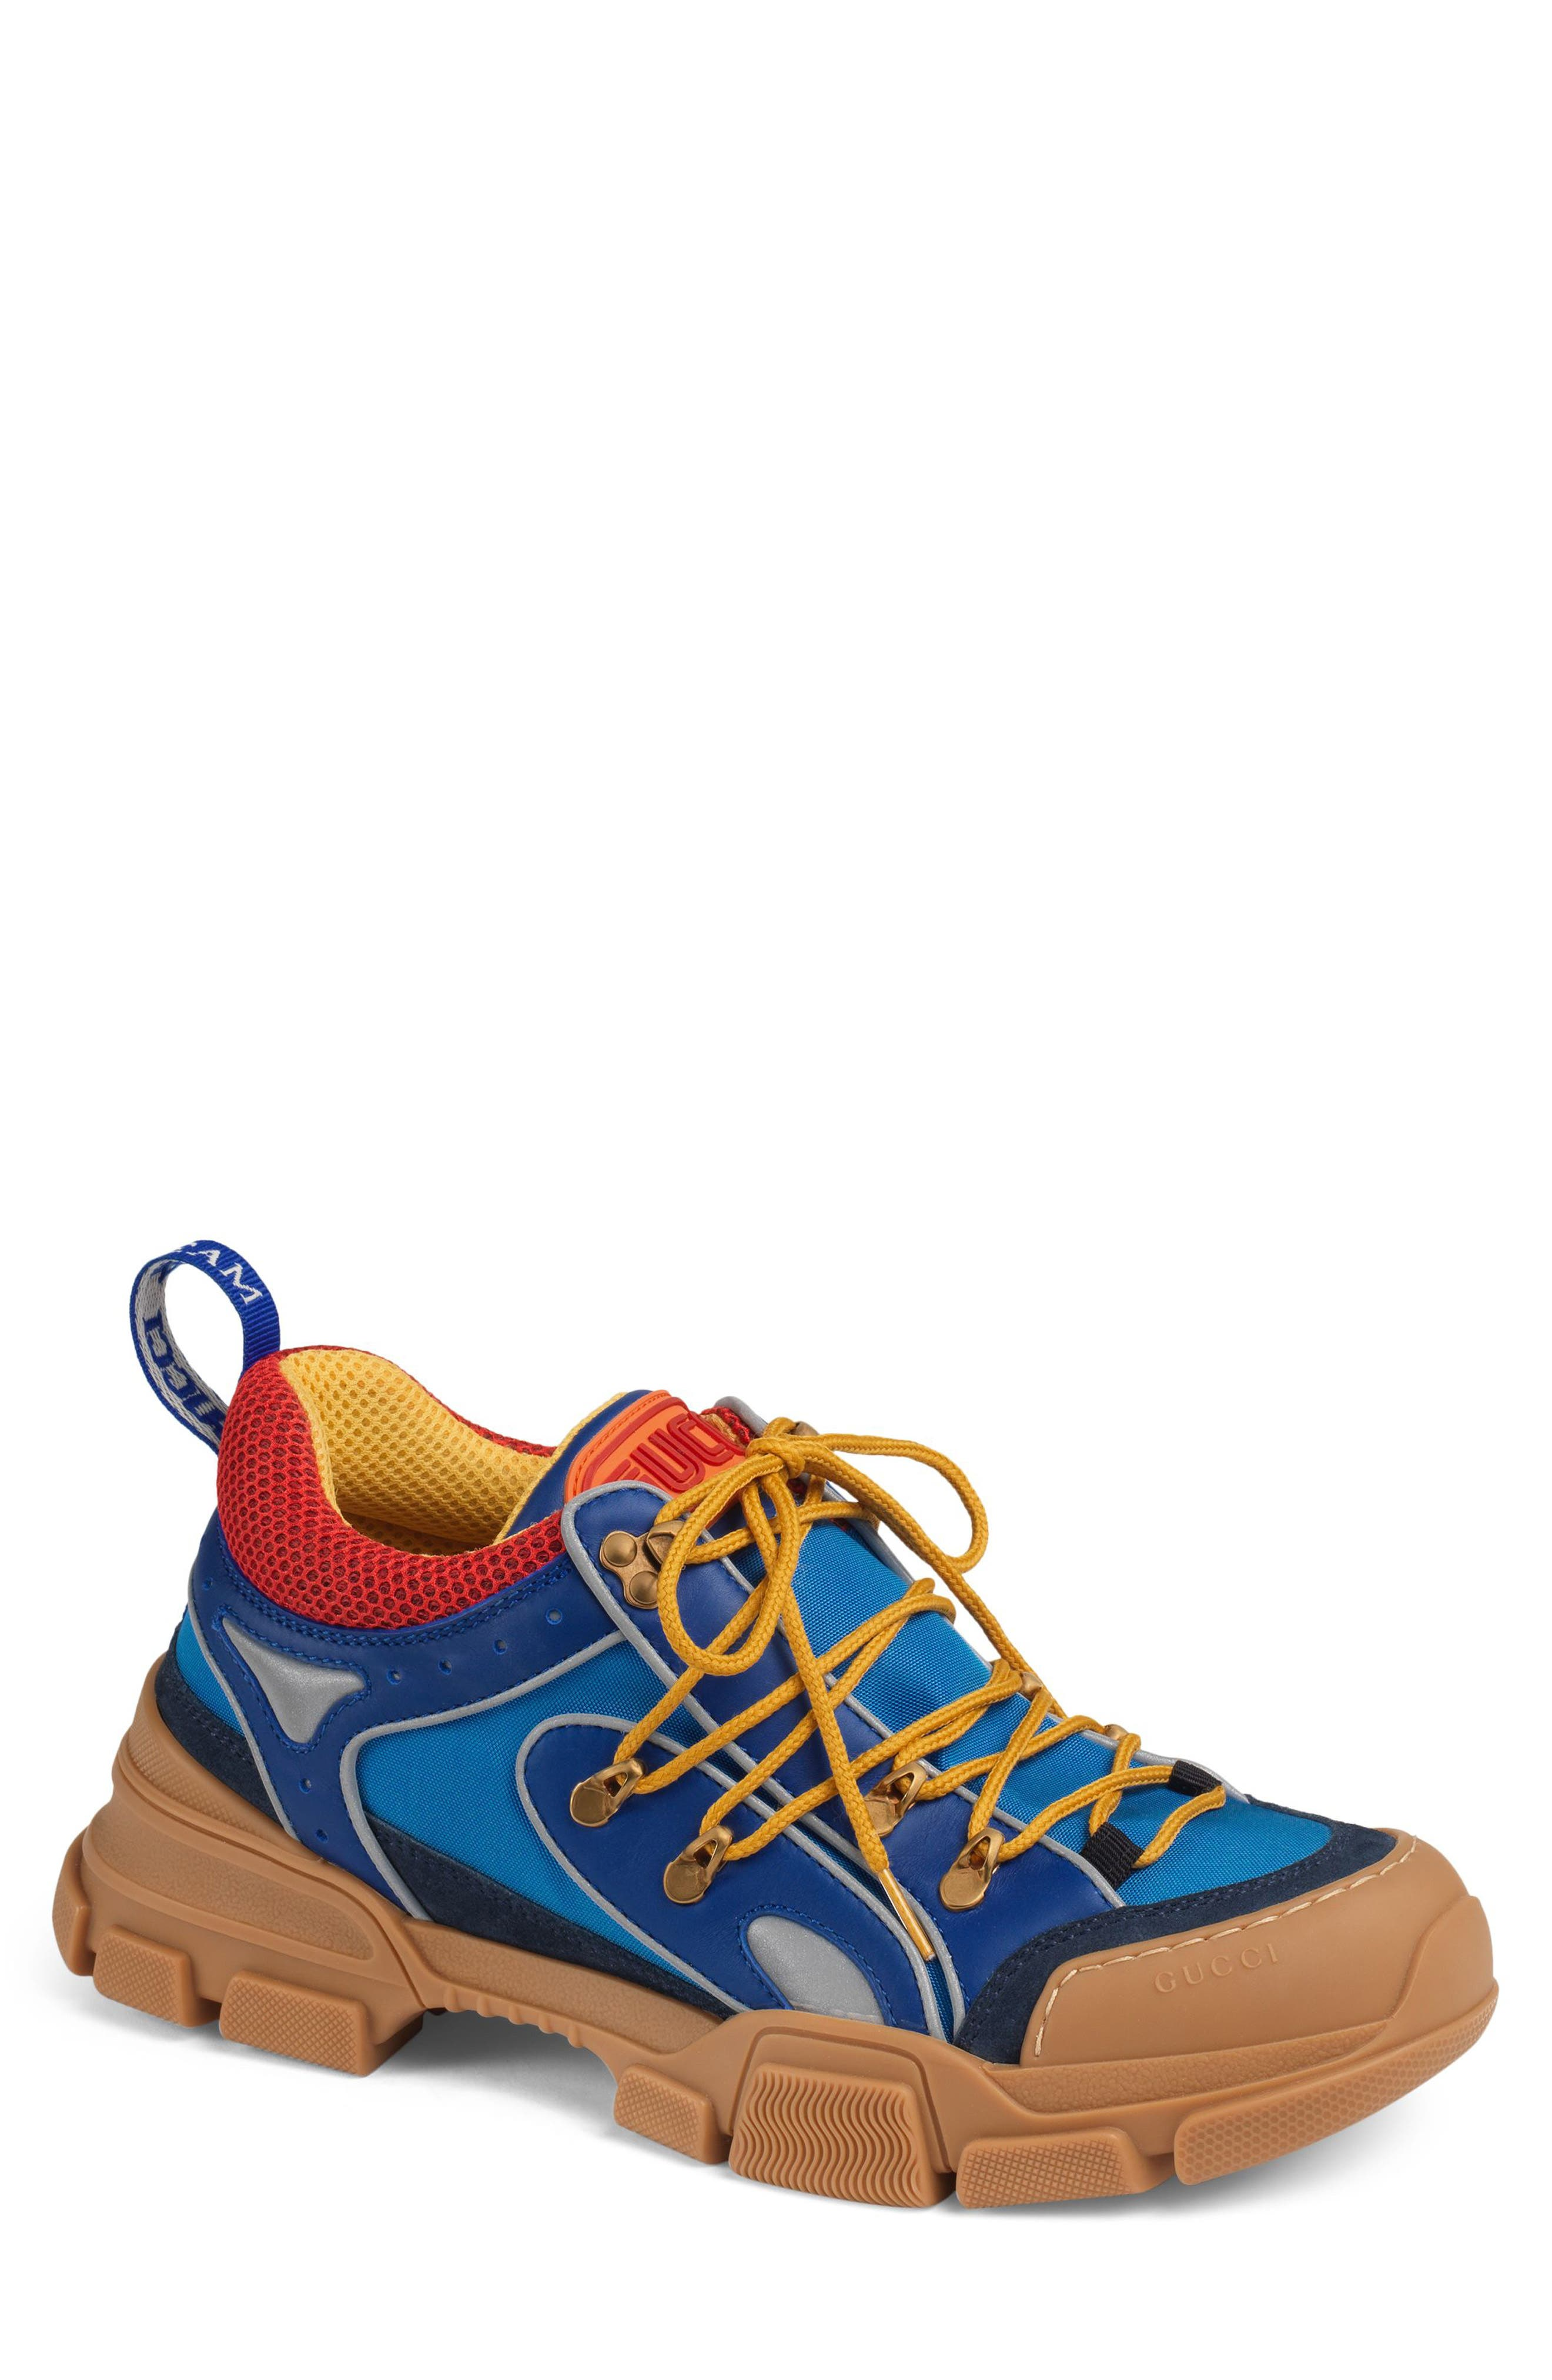 Leather and Canvas Sneaker,                         Main,                         color, BLUE